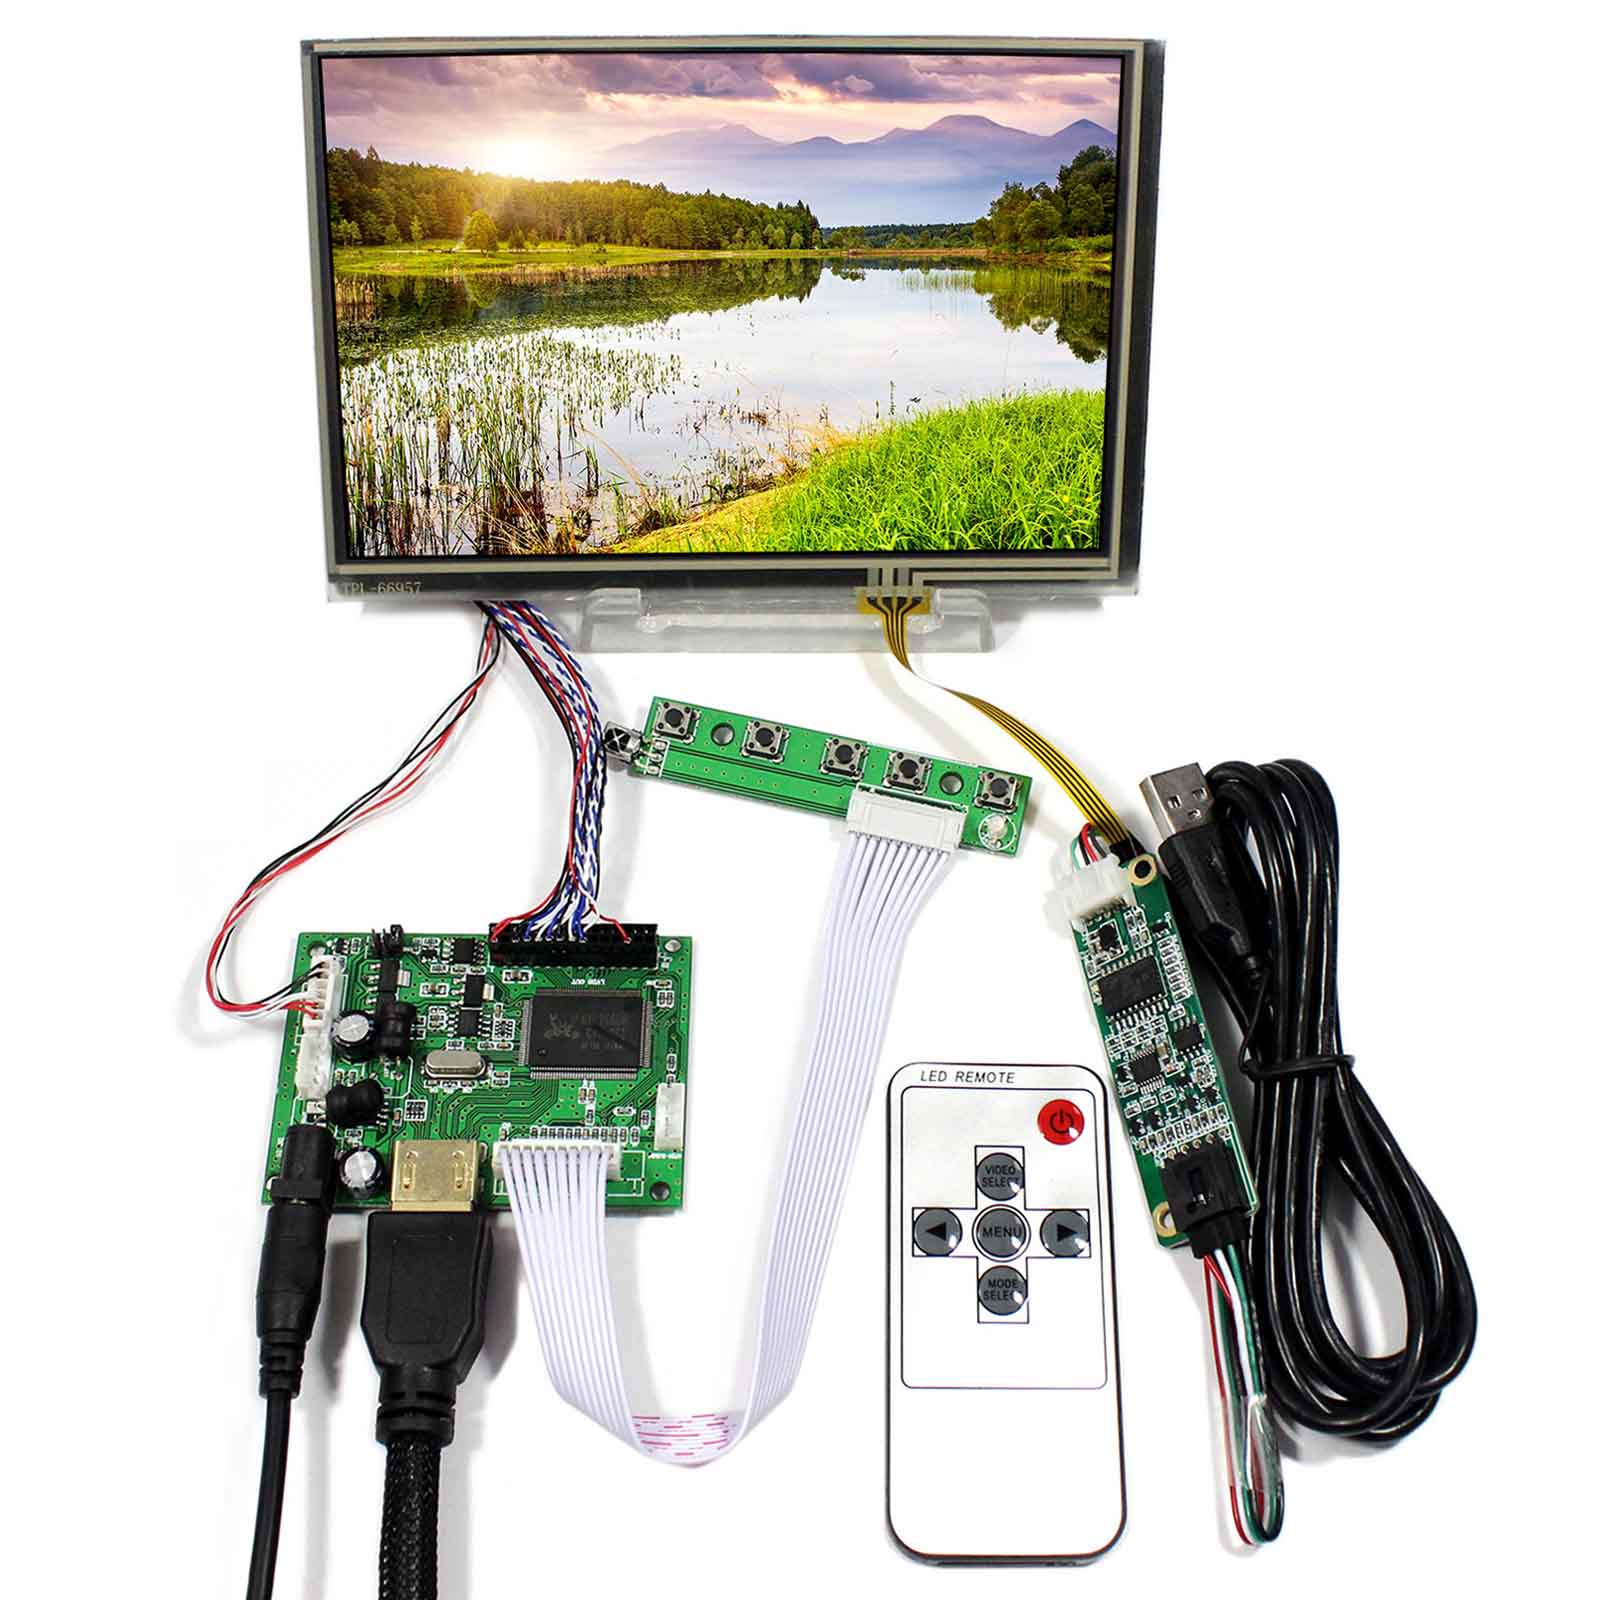 HDMI LCD Controller Board With 7 1280x800 N070ICG-LD1 IPS LCD With Touch ScreenHDMI LCD Controller Board With 7 1280x800 N070ICG-LD1 IPS LCD With Touch Screen